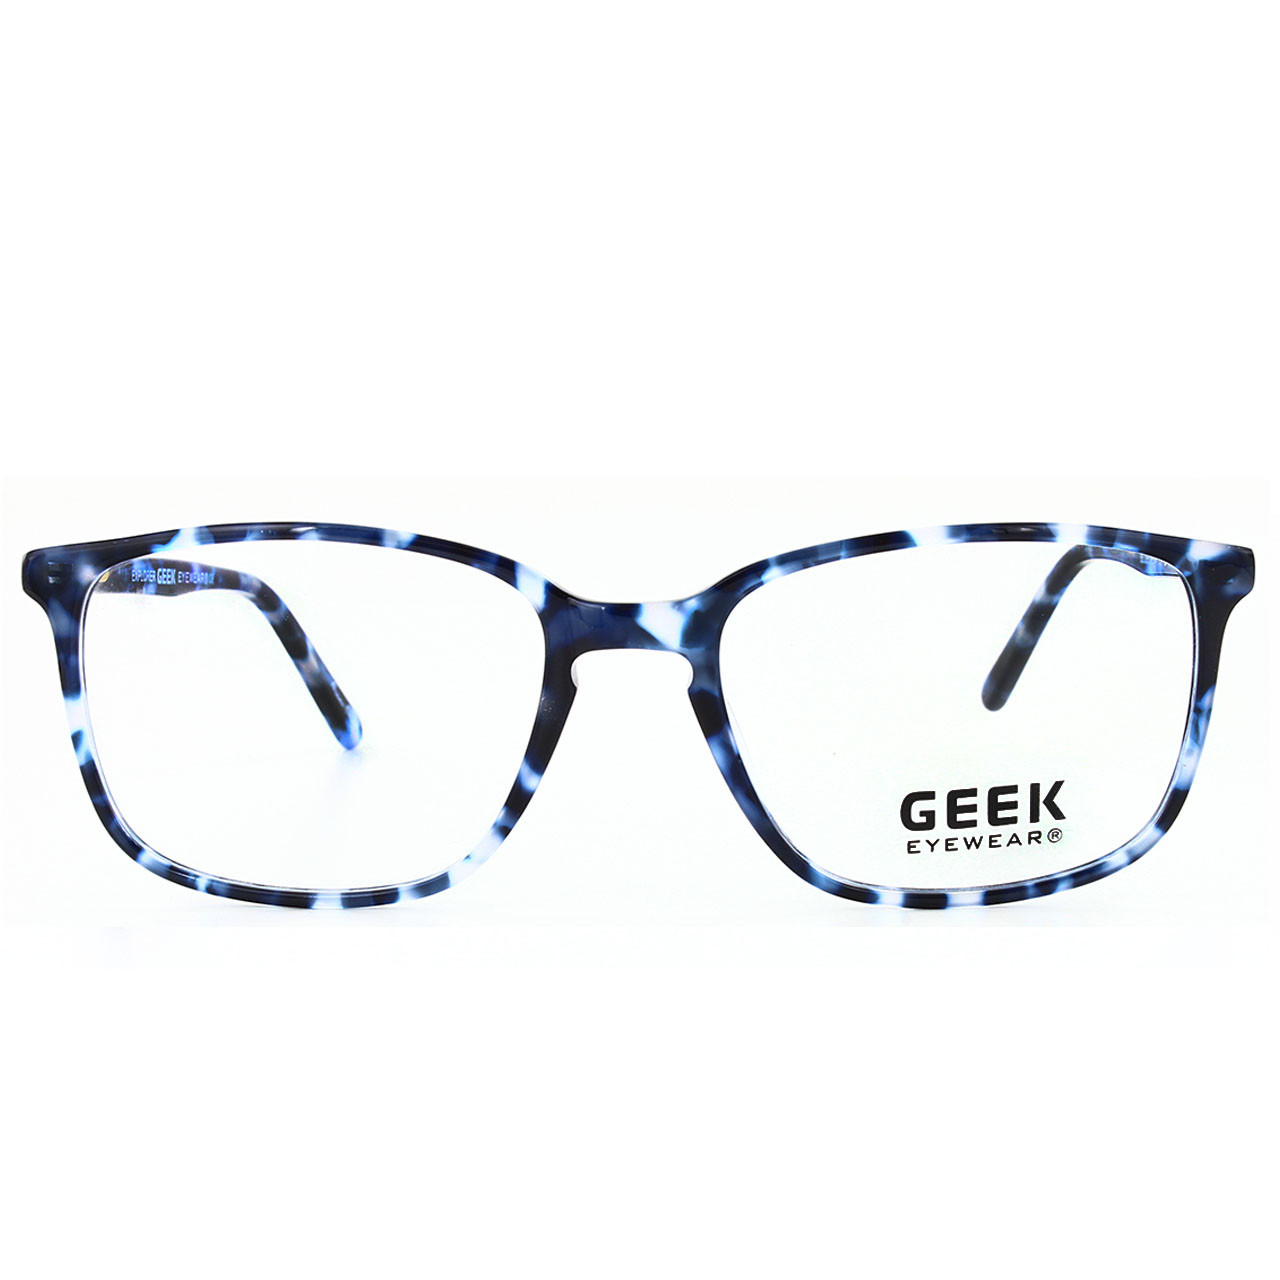 GEEK Eyewear GEEK EXPLORER Blue